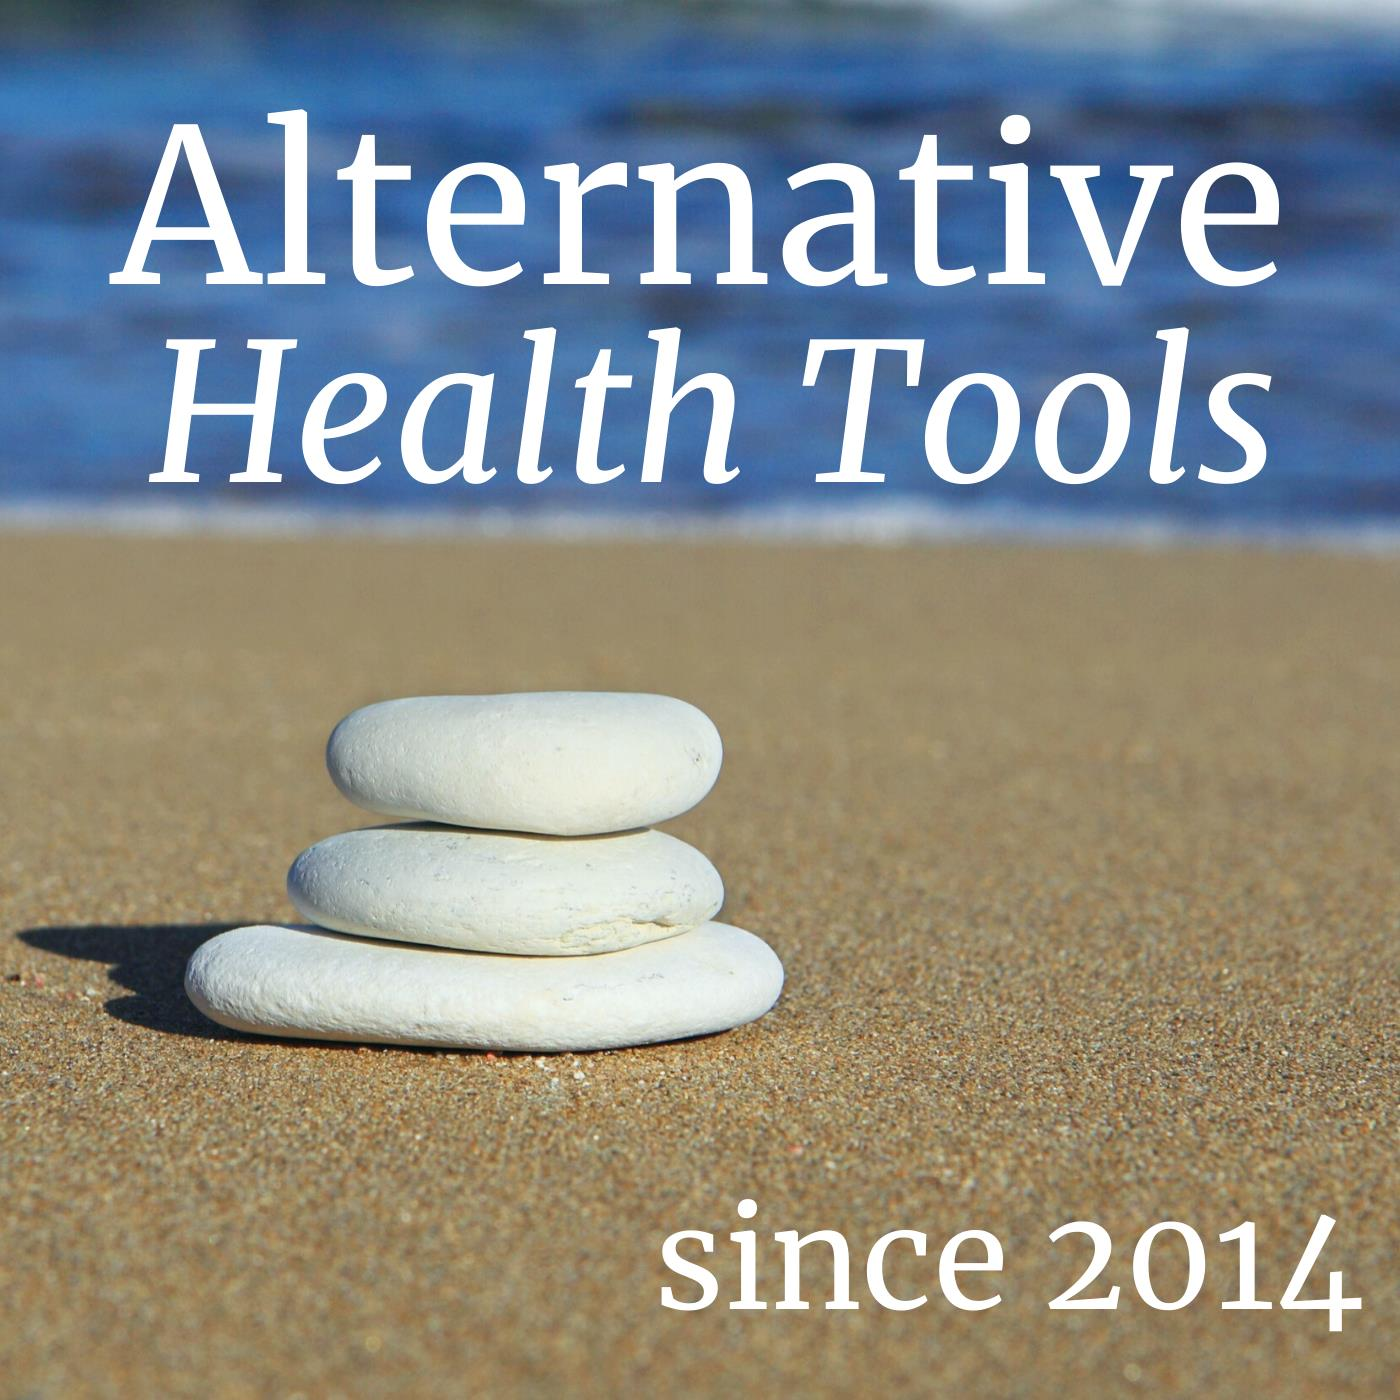 Co-hosts Lisa Thorp, Lisa Victoria, and co-host/producer John Biethan discover and share new alternative health tools and resources from alternative healthcare practitioners and experts.